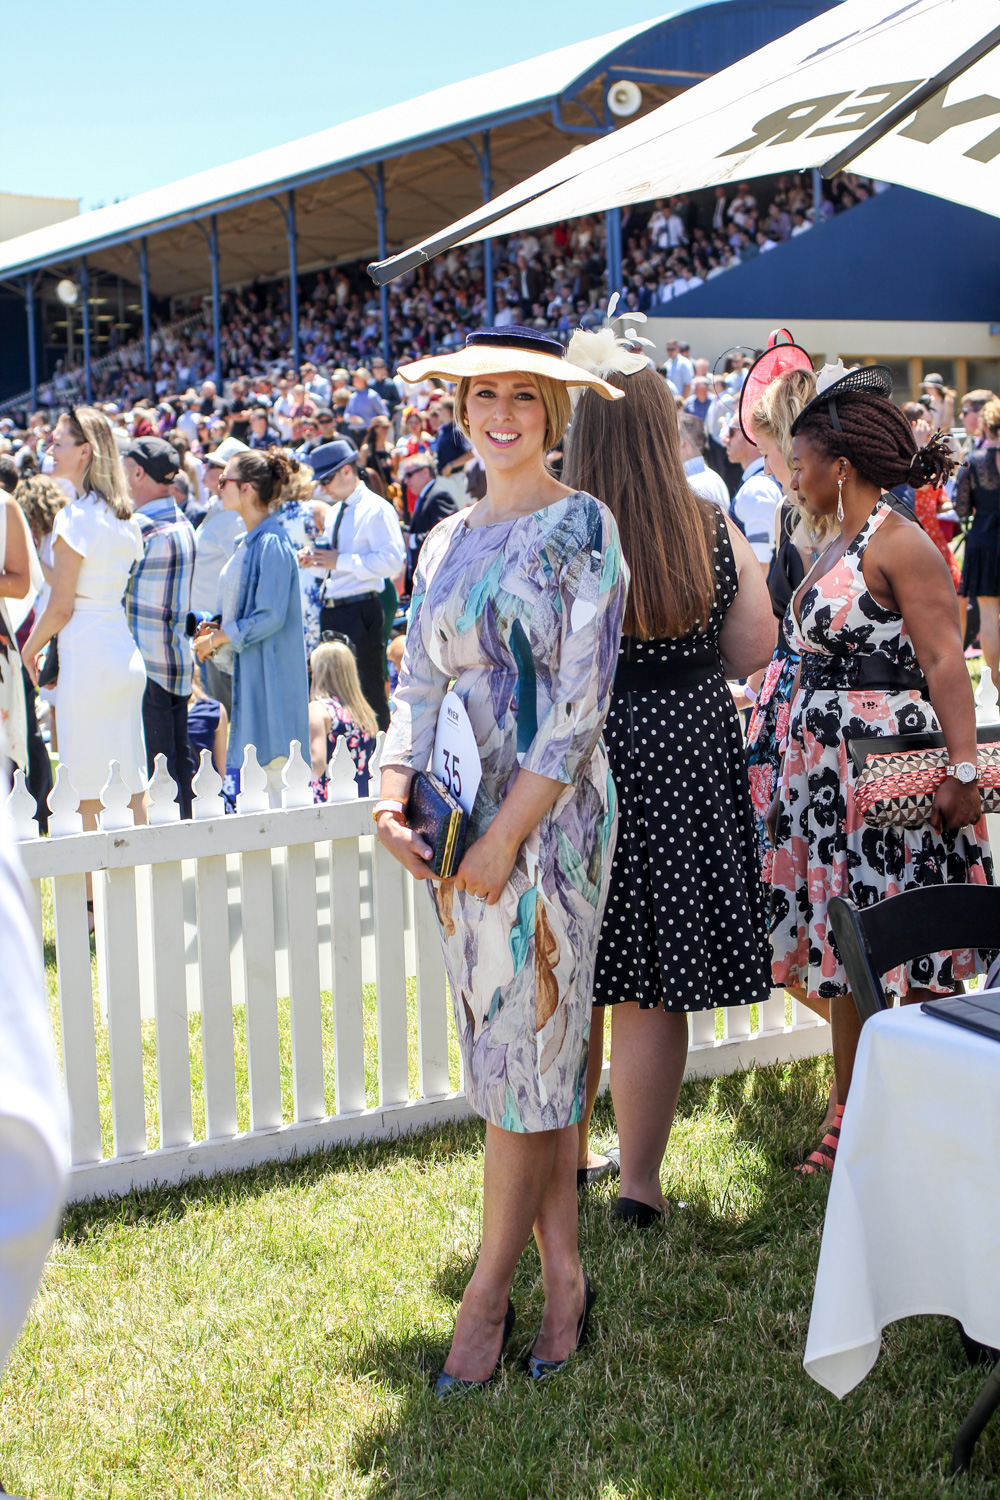 The Goldfields Girl at fashion on the field 2016 wearing h&m dress with navy vintage hat and bag